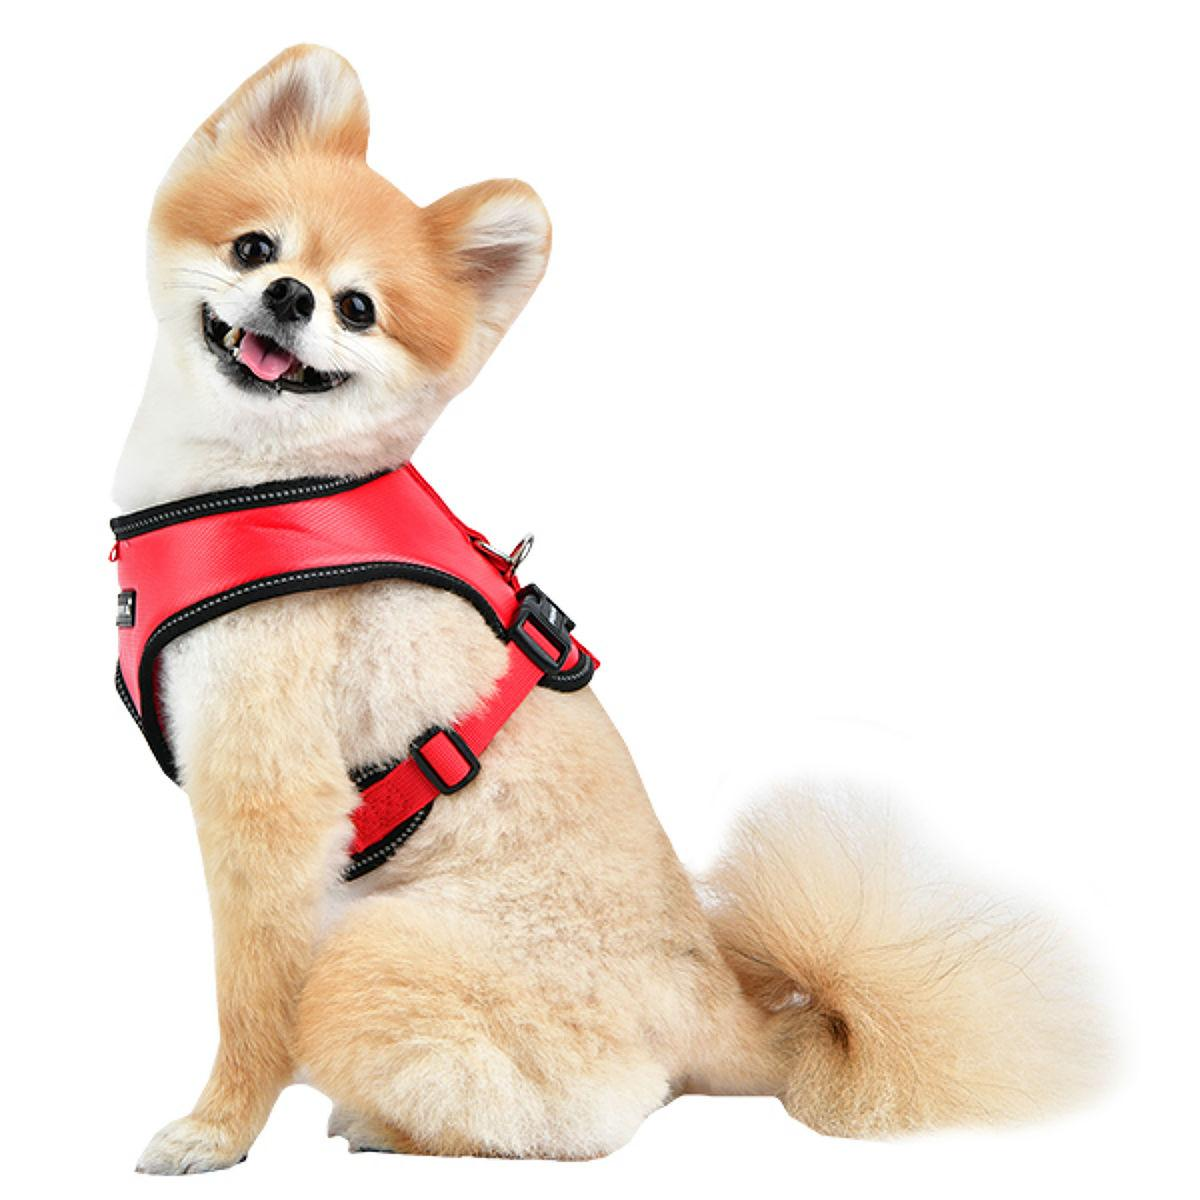 Legacy Snugfit Dog Harness By Puppia - Red